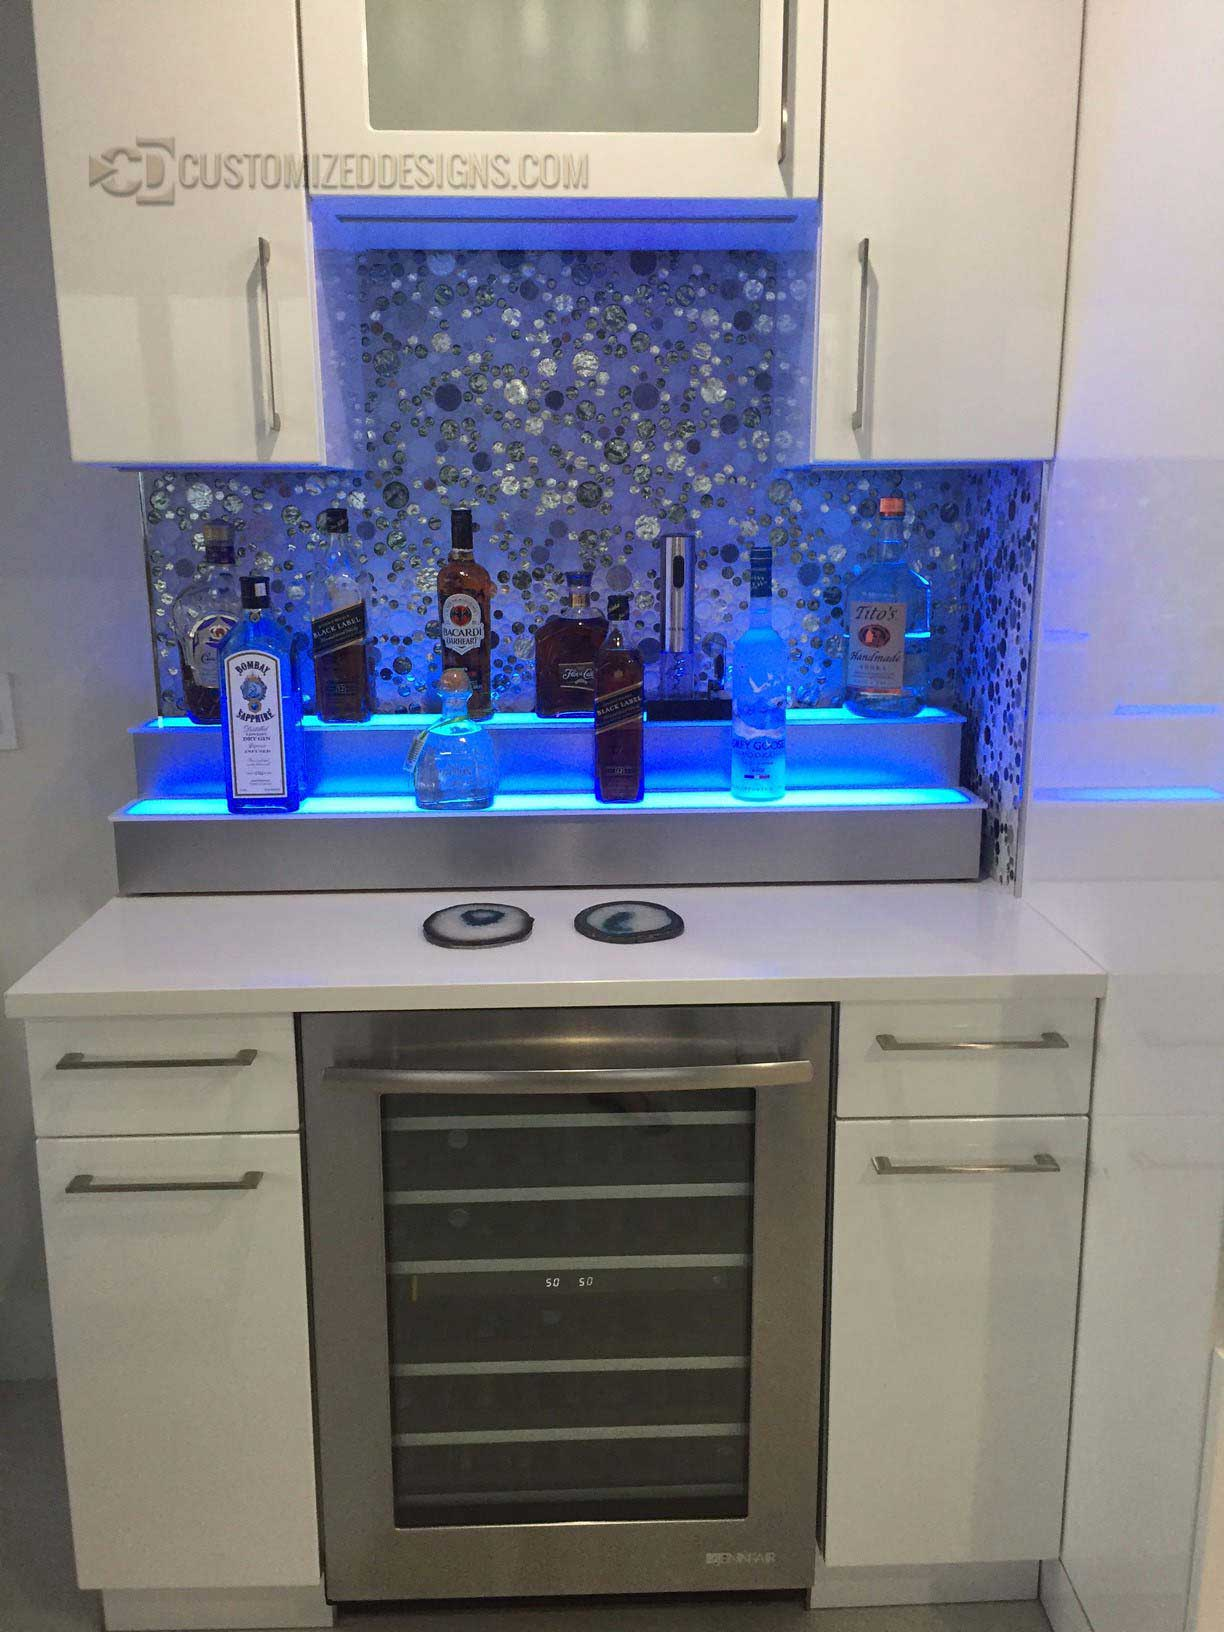 2 Tier Home Bar Display w/ Stainless Steel Finish